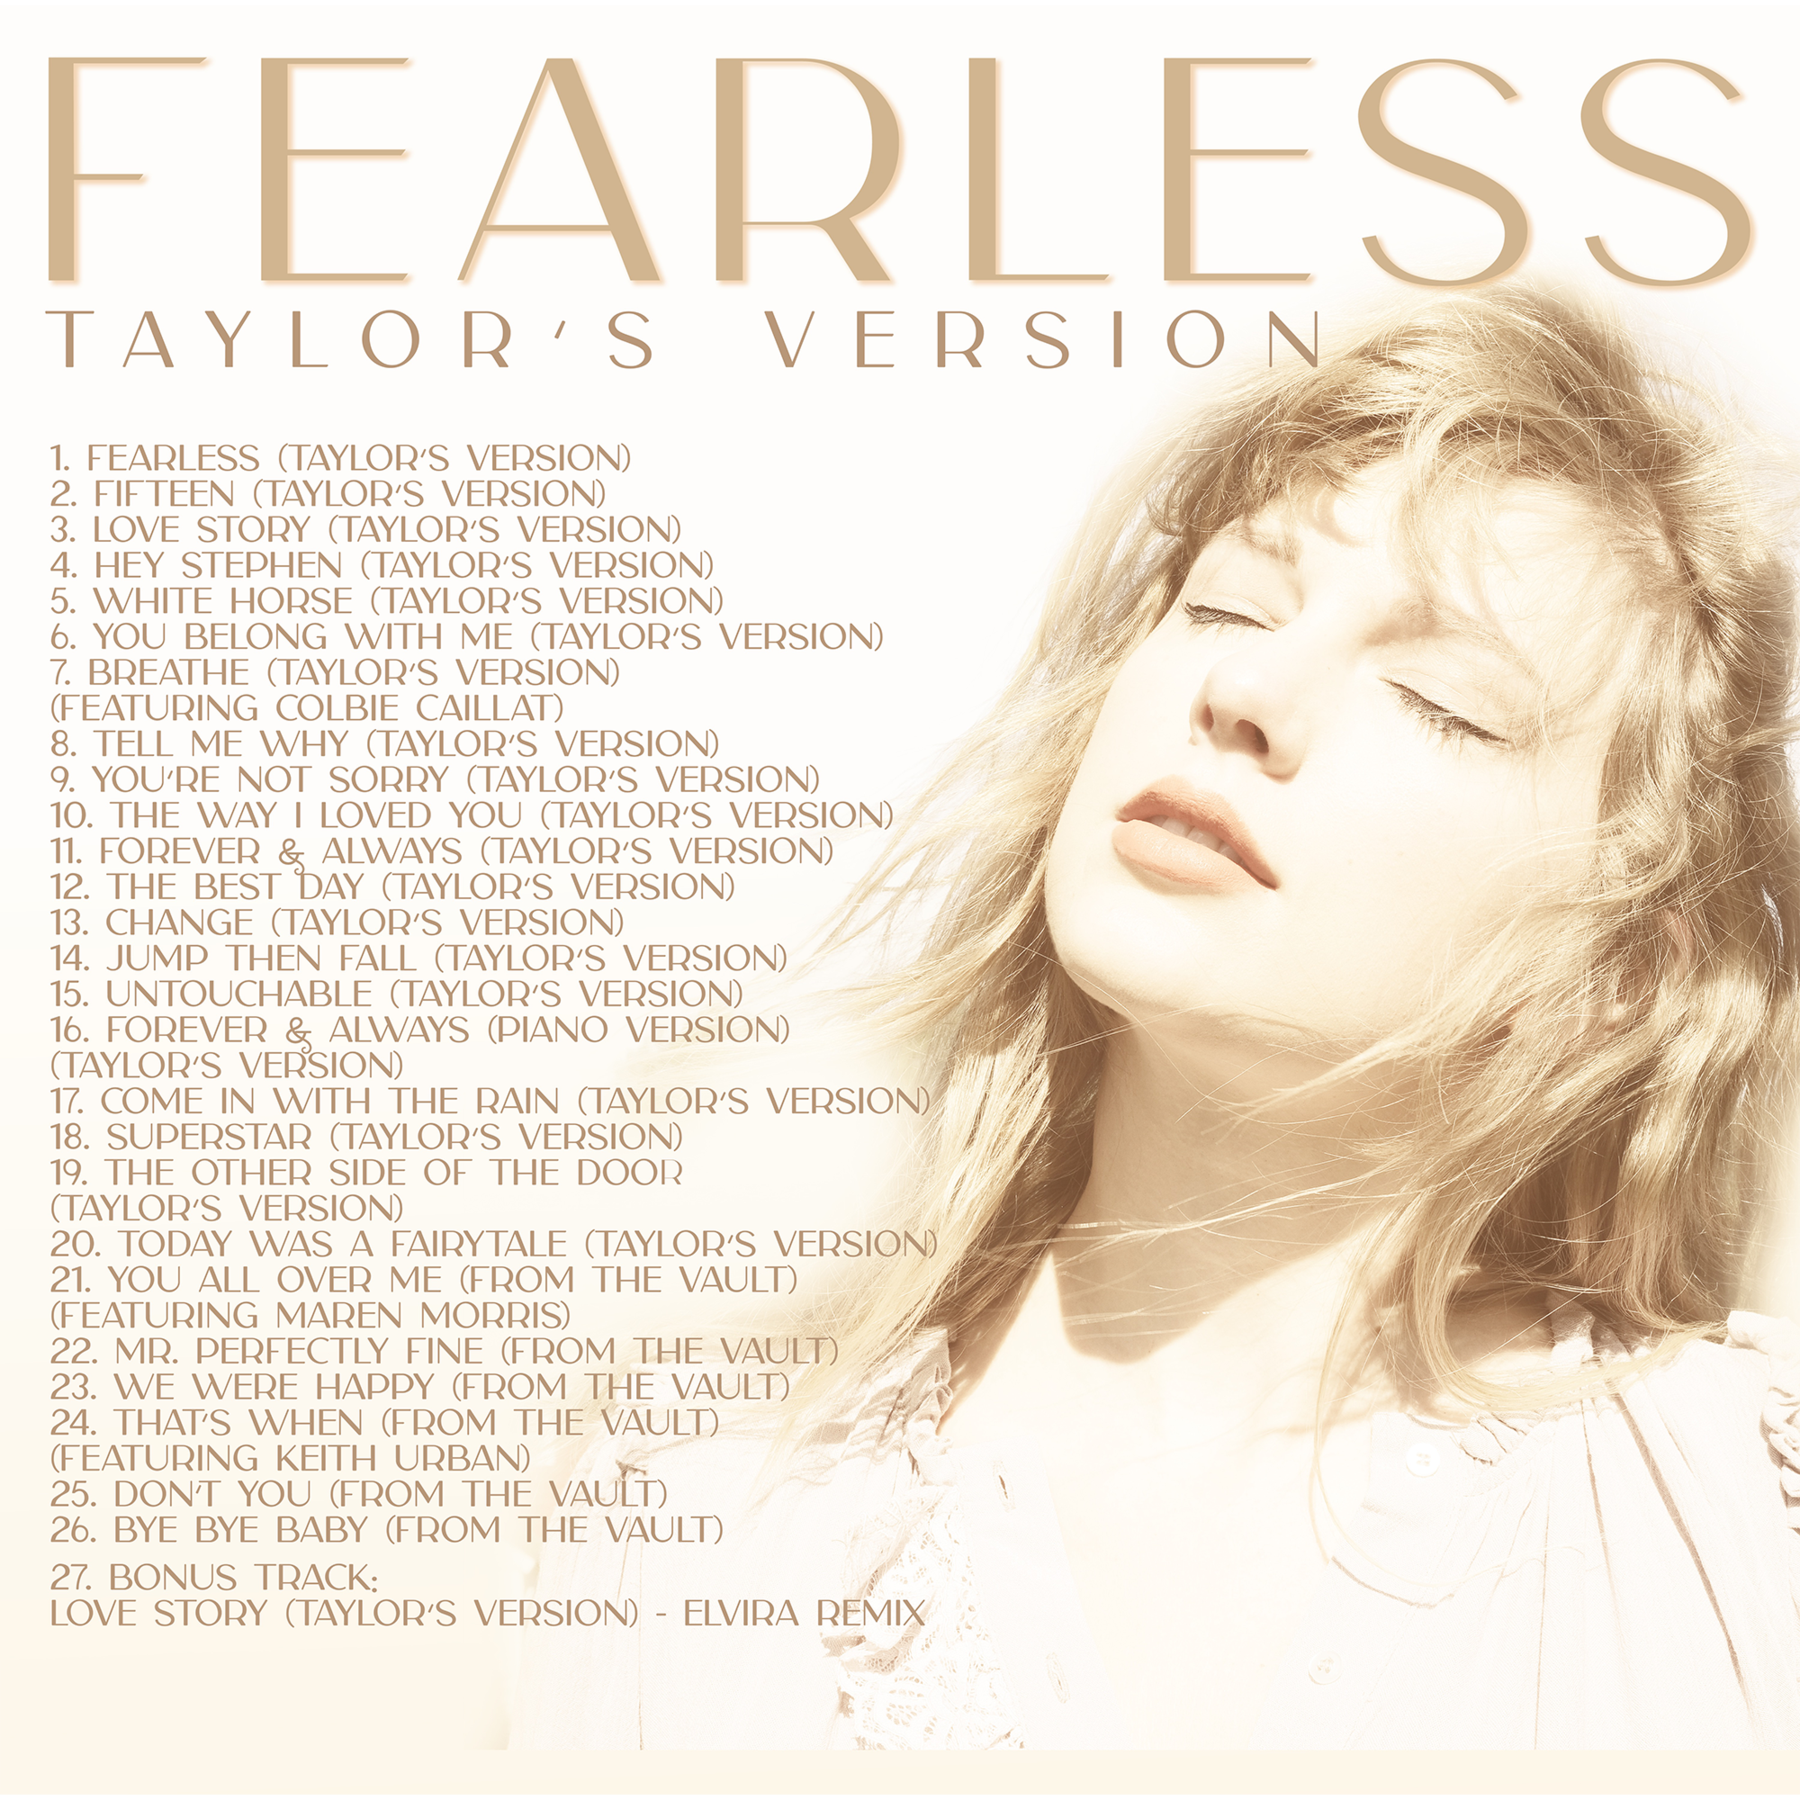 Fearless Taylor sVersion BackCover 1800x1800